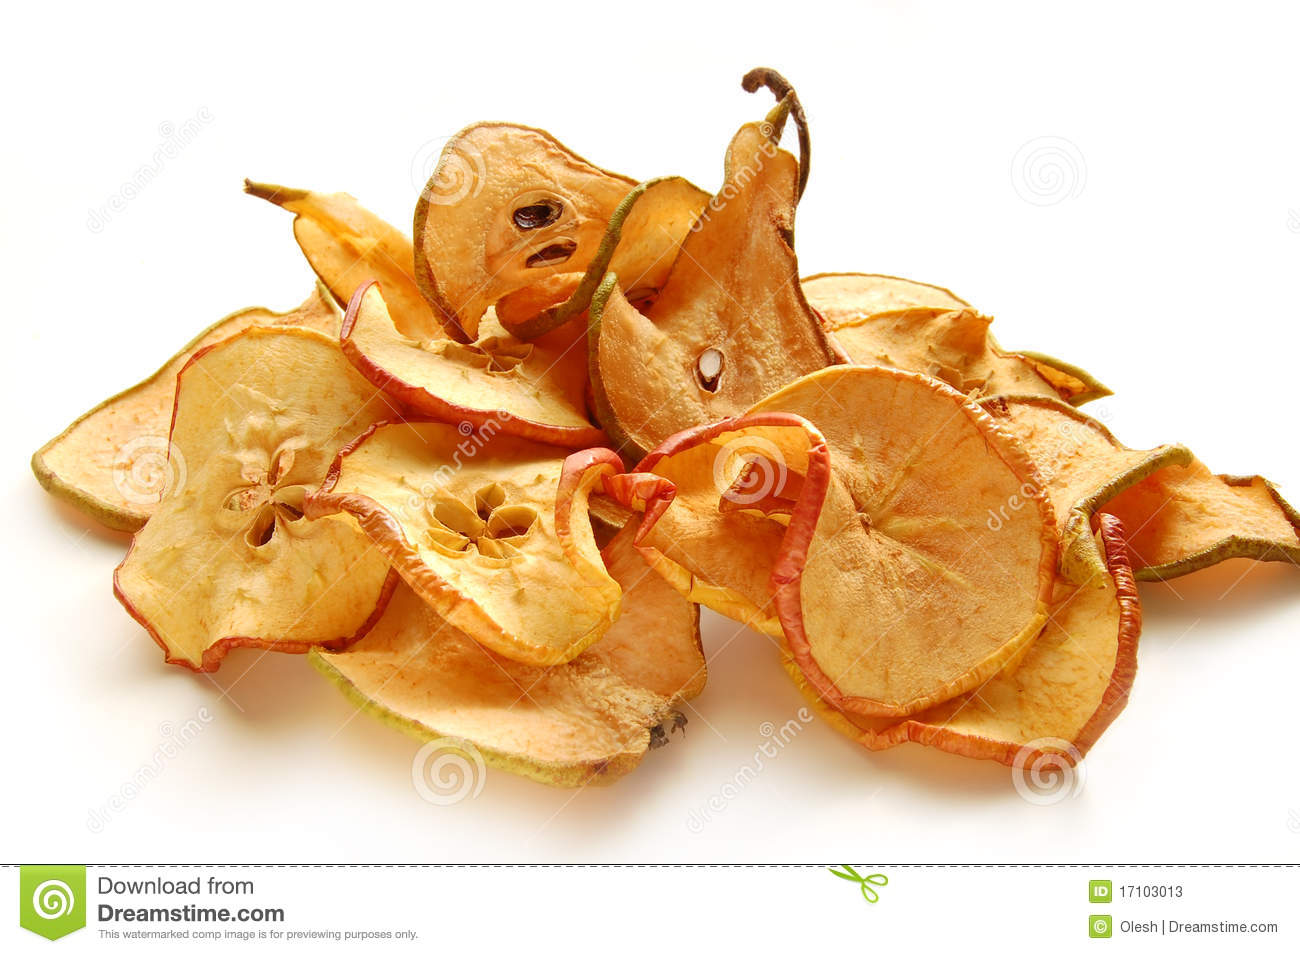 Gedroogde Appels Dried Apples And Pears Stock Image Image Of Slice Fruit